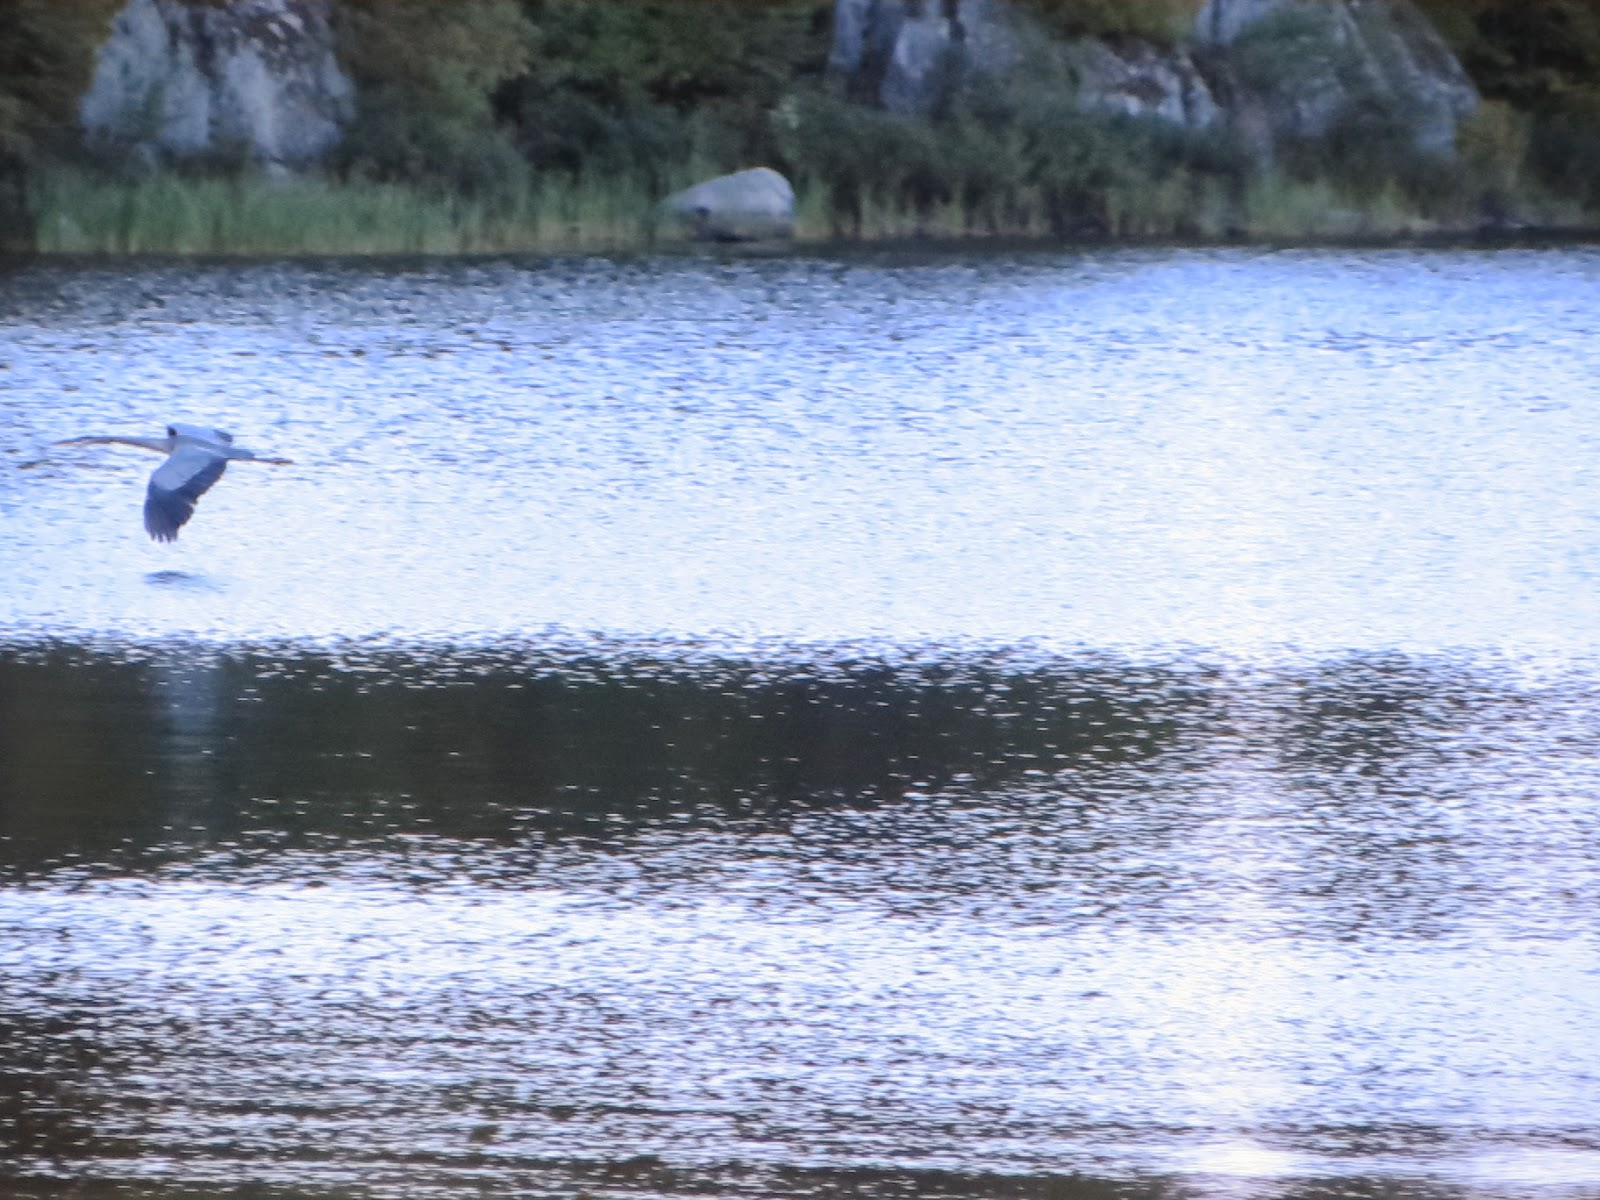 Great, Blue, Heron, Semers park, Ely, Minnesota, Photo by John Huisman